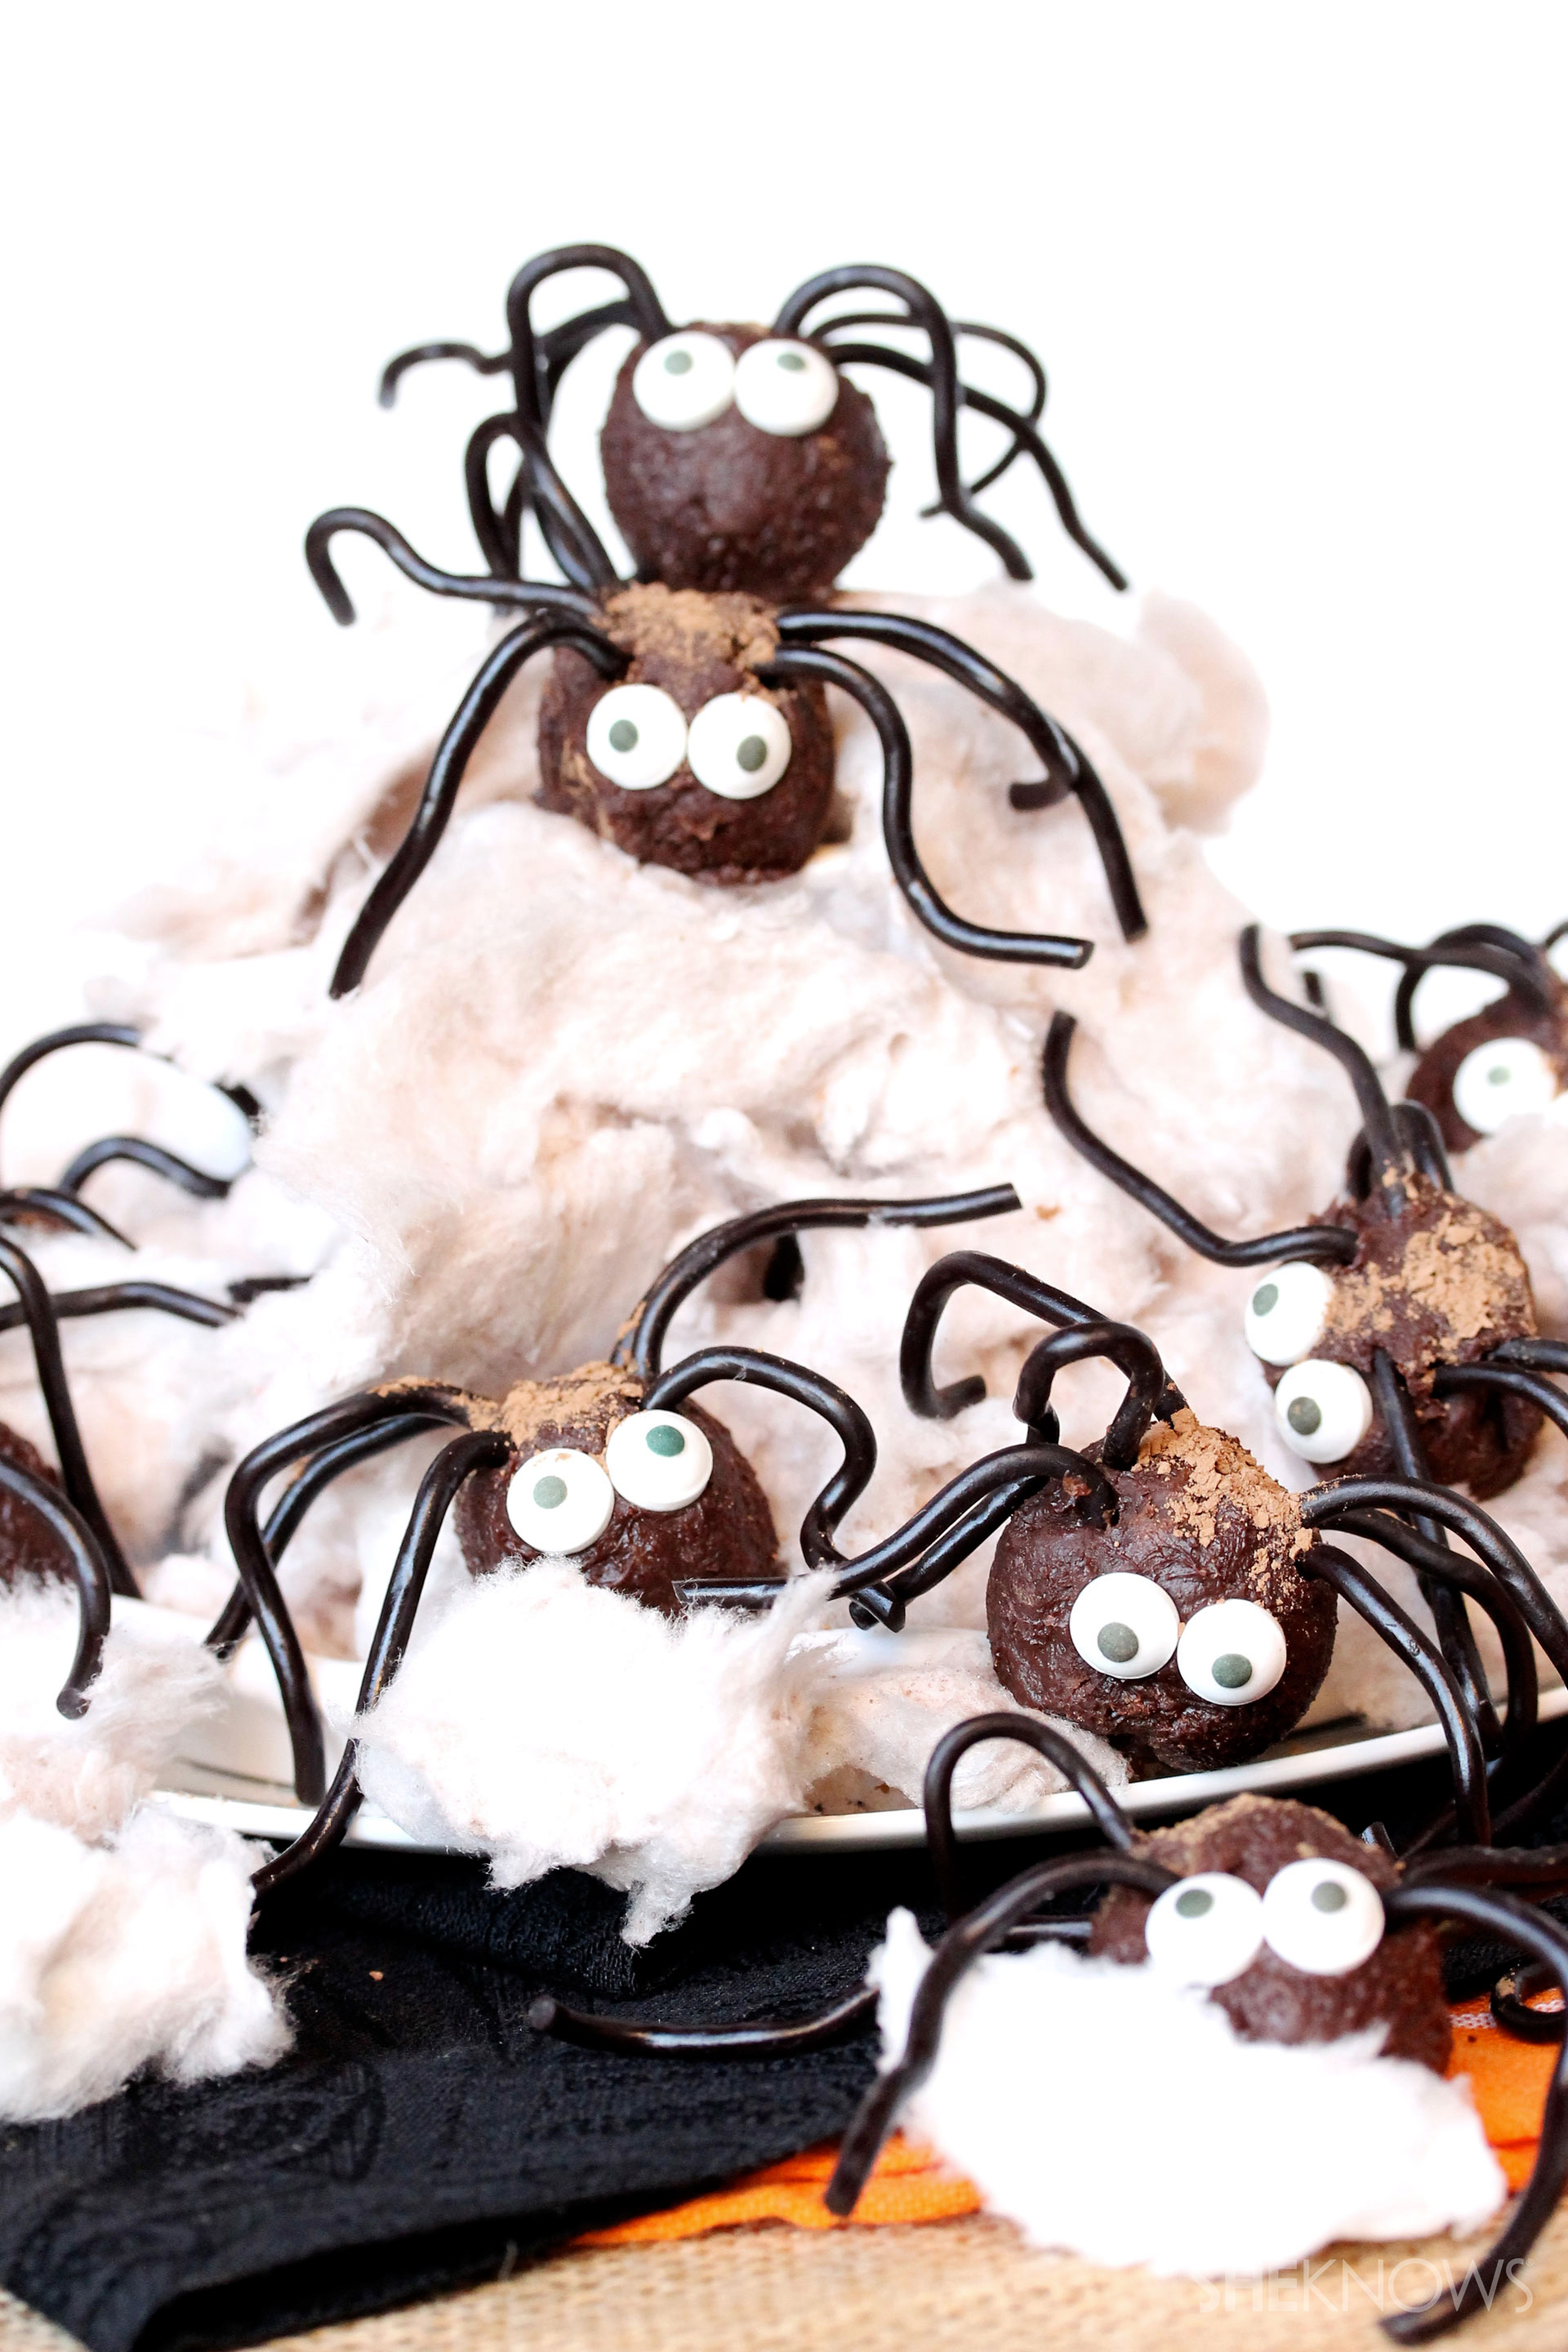 chocolate spiders in an edible web